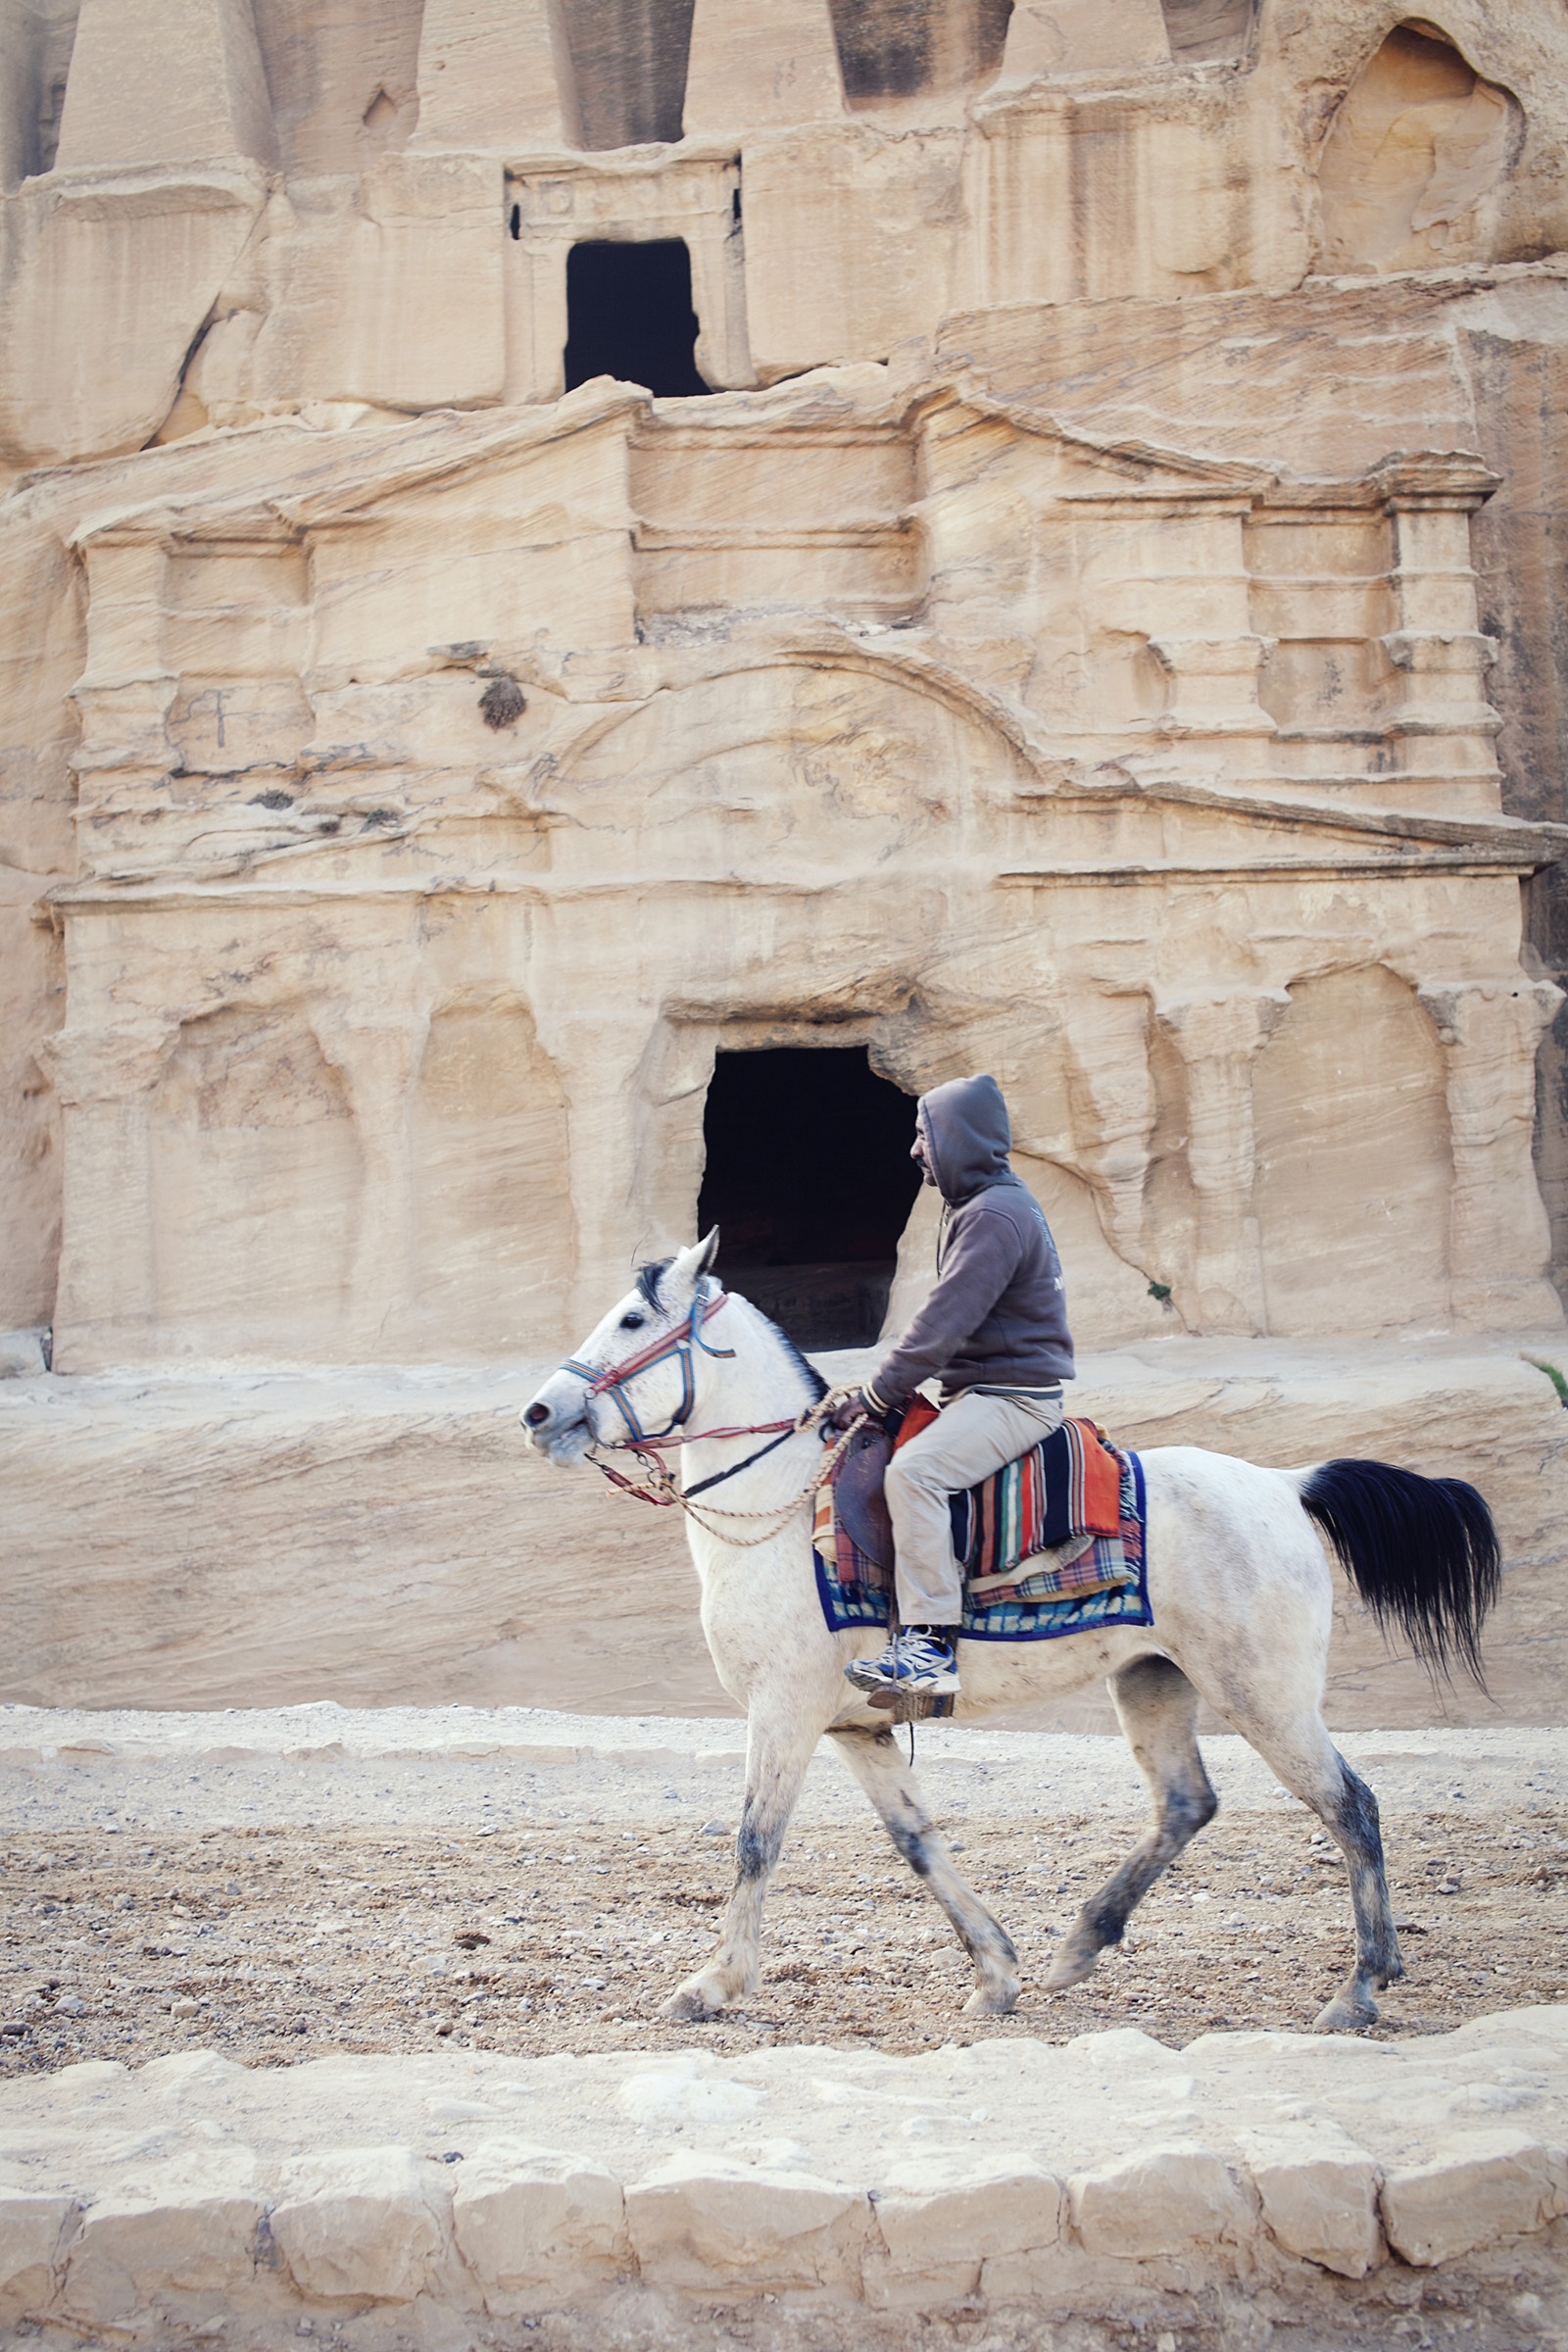 Horse riding in Petra